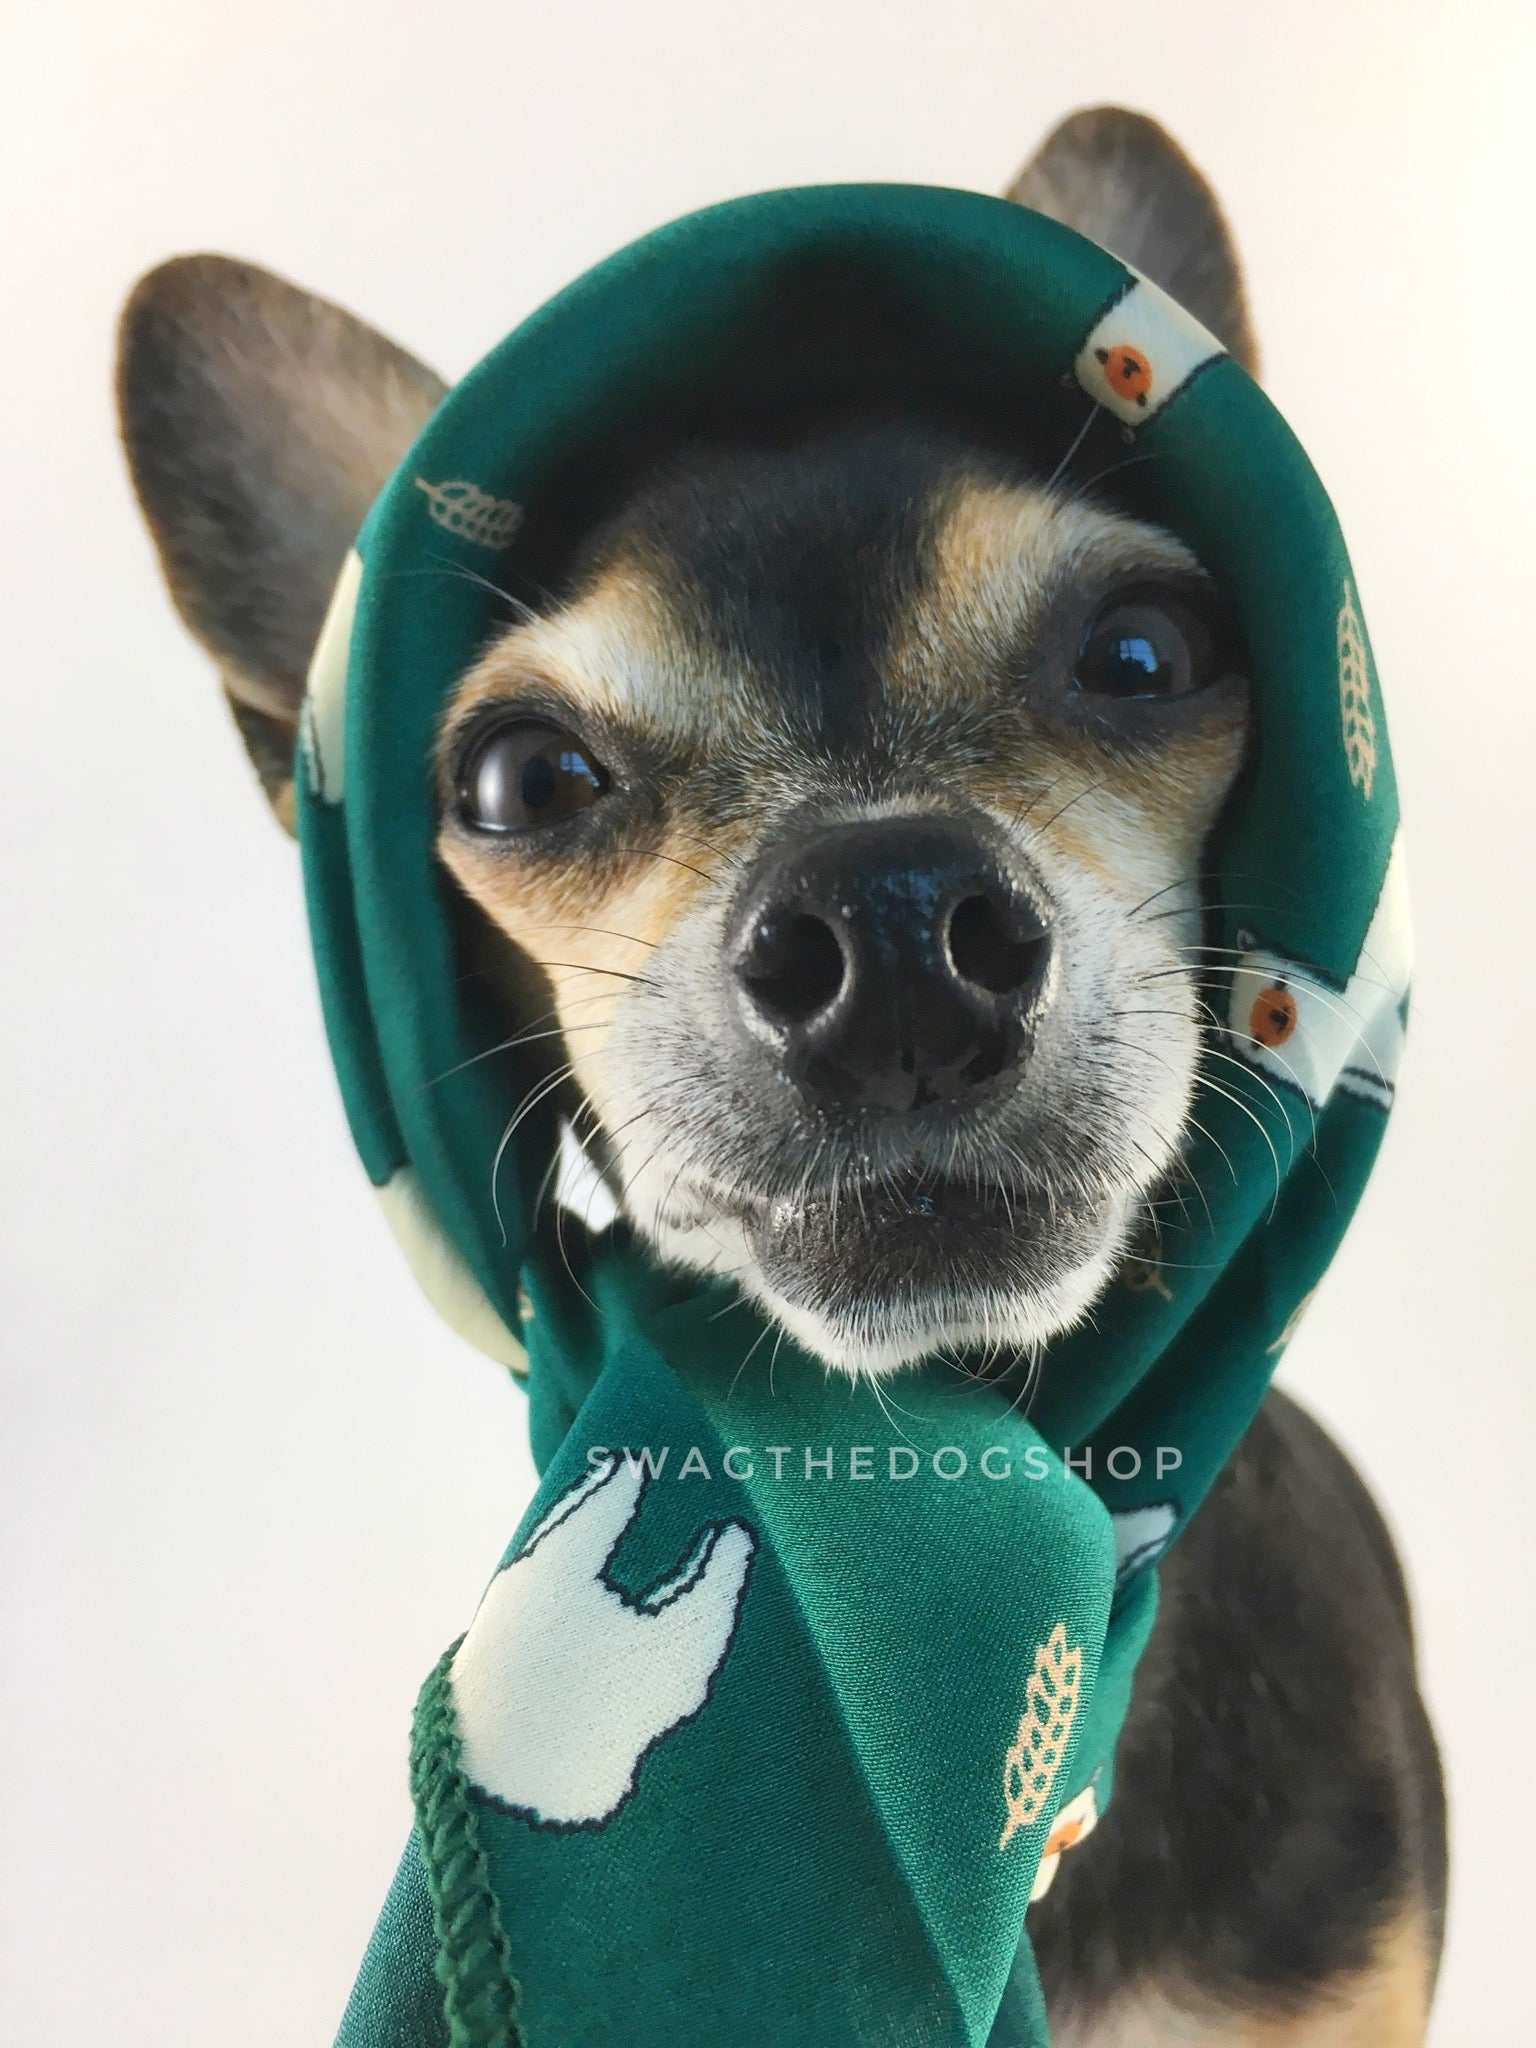 Lorenzo Llama Green Swagdana Scarf - Bust of Cute Chihuahua Wearing Swagdana Scarf as Headscarf. Dog Bandana. Dog Scarf.